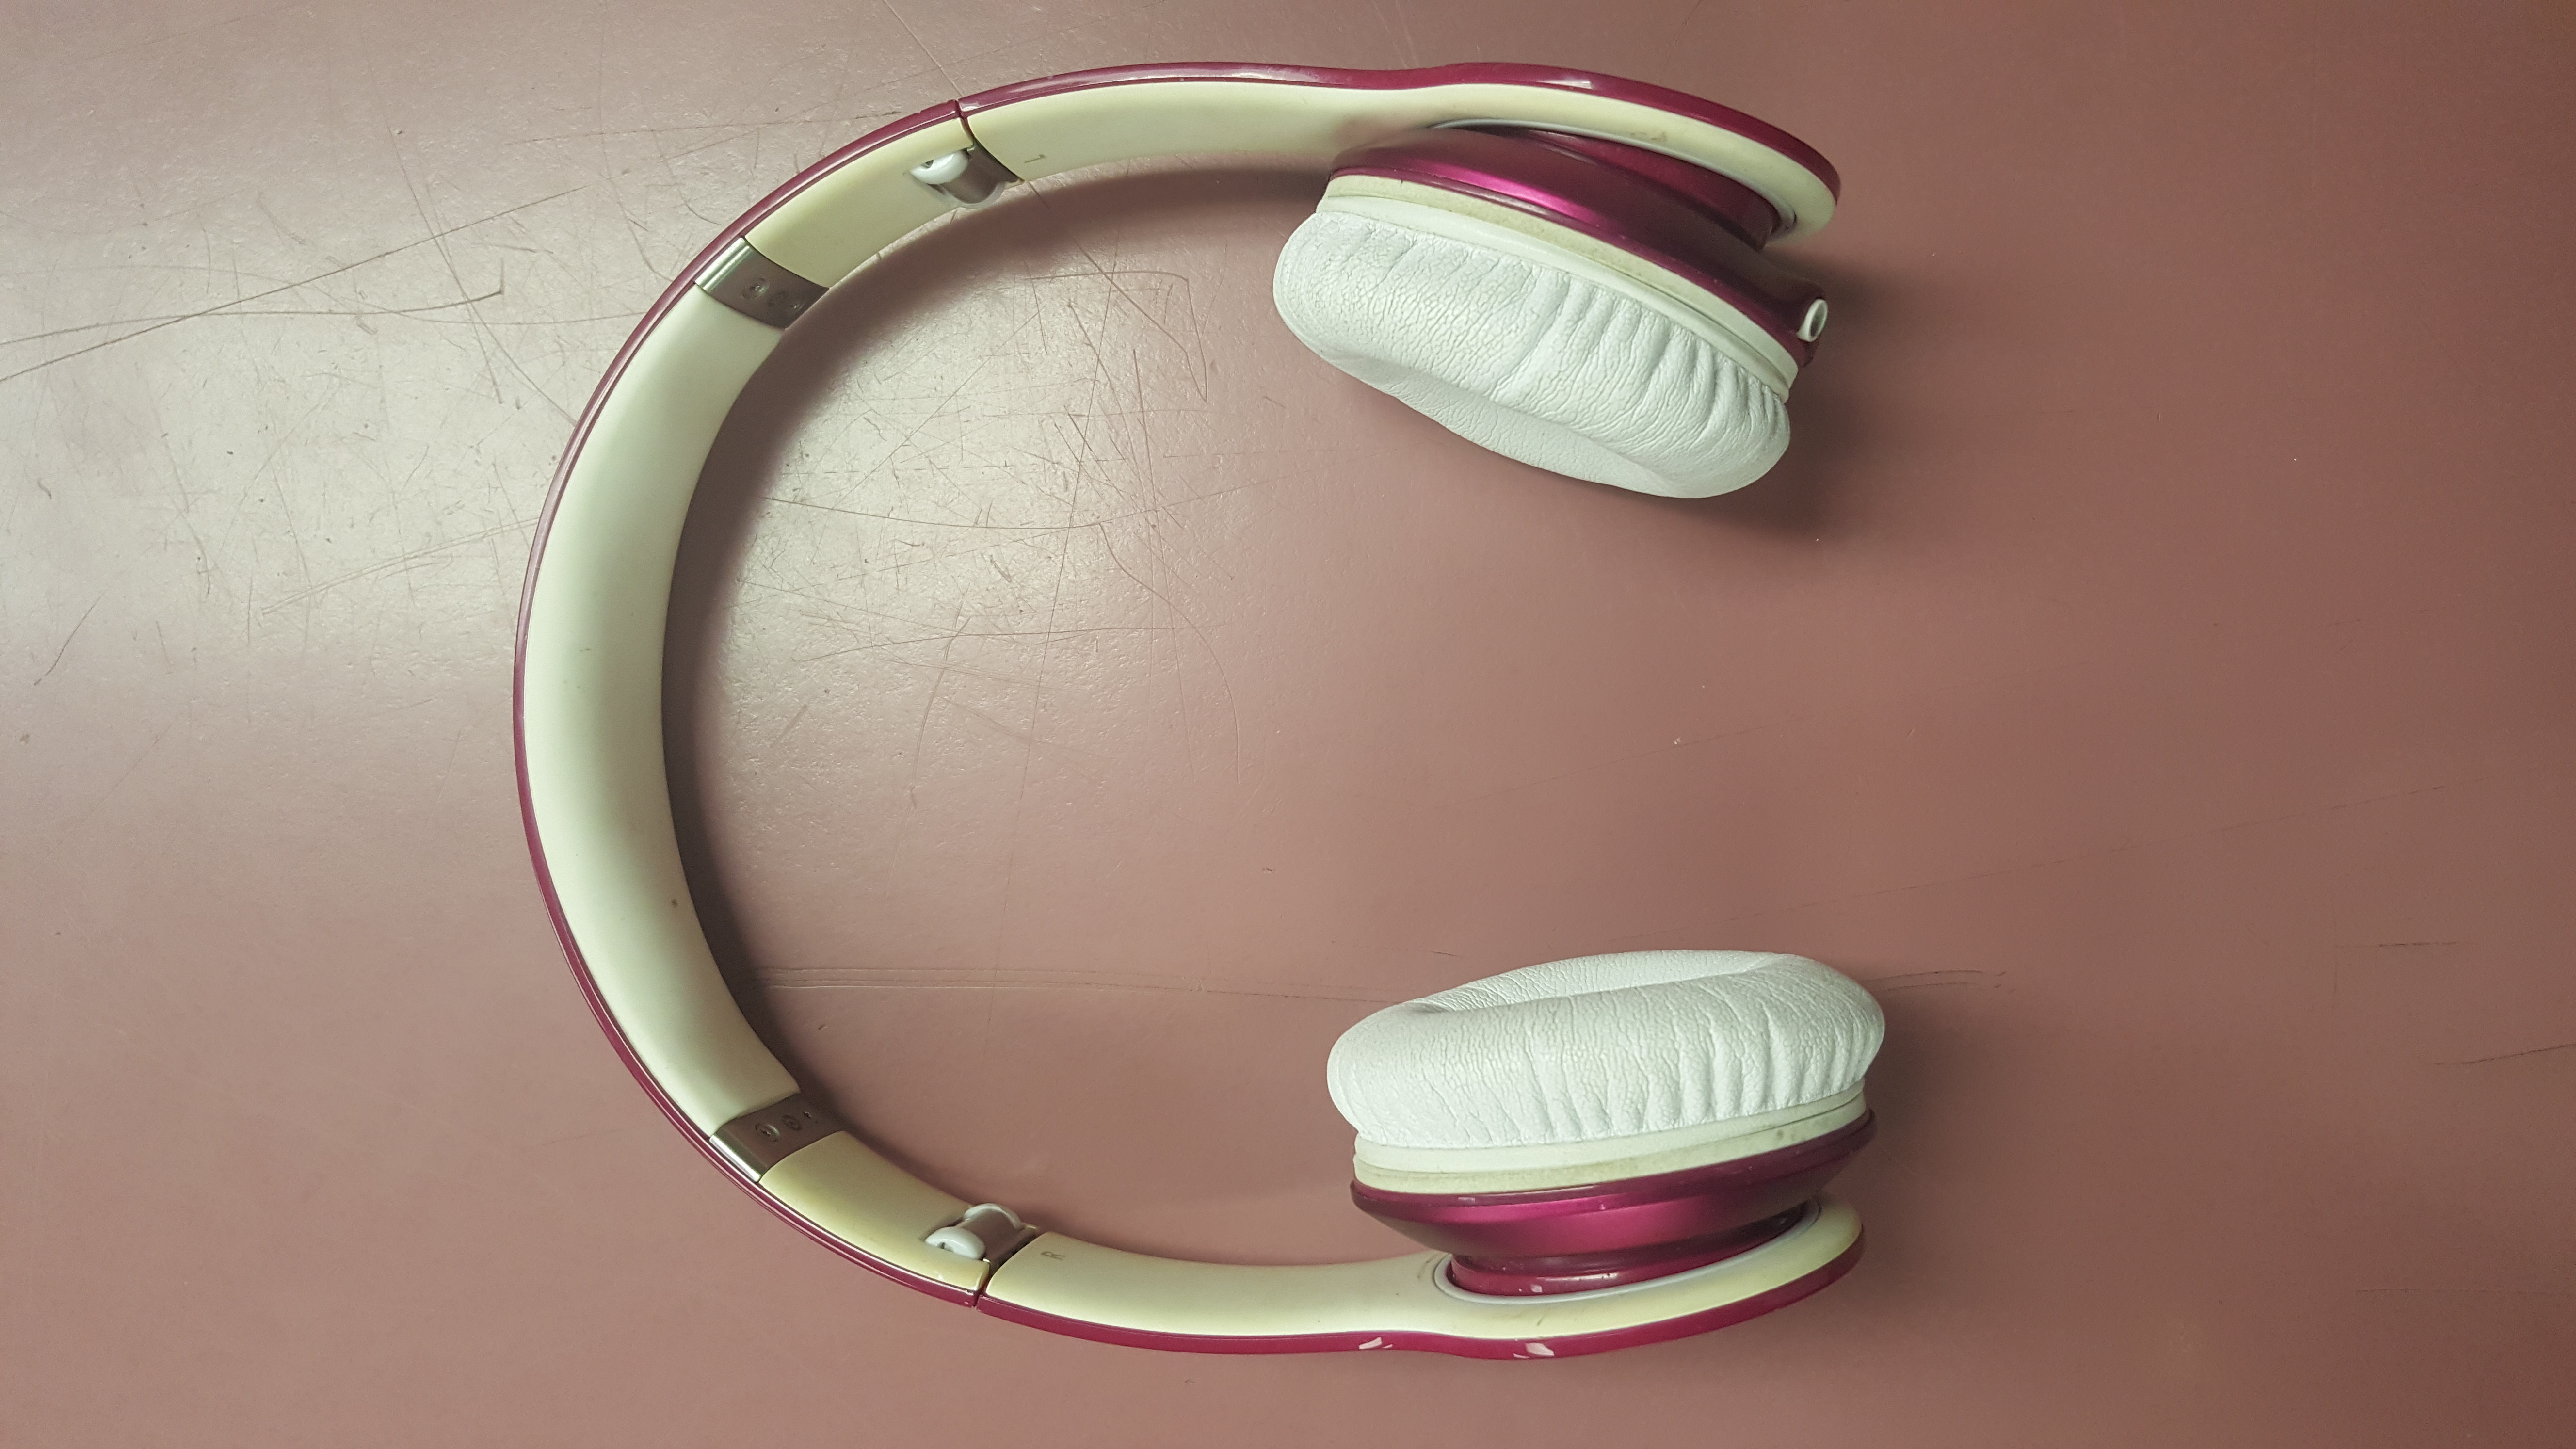 PINK BEATS AS IS